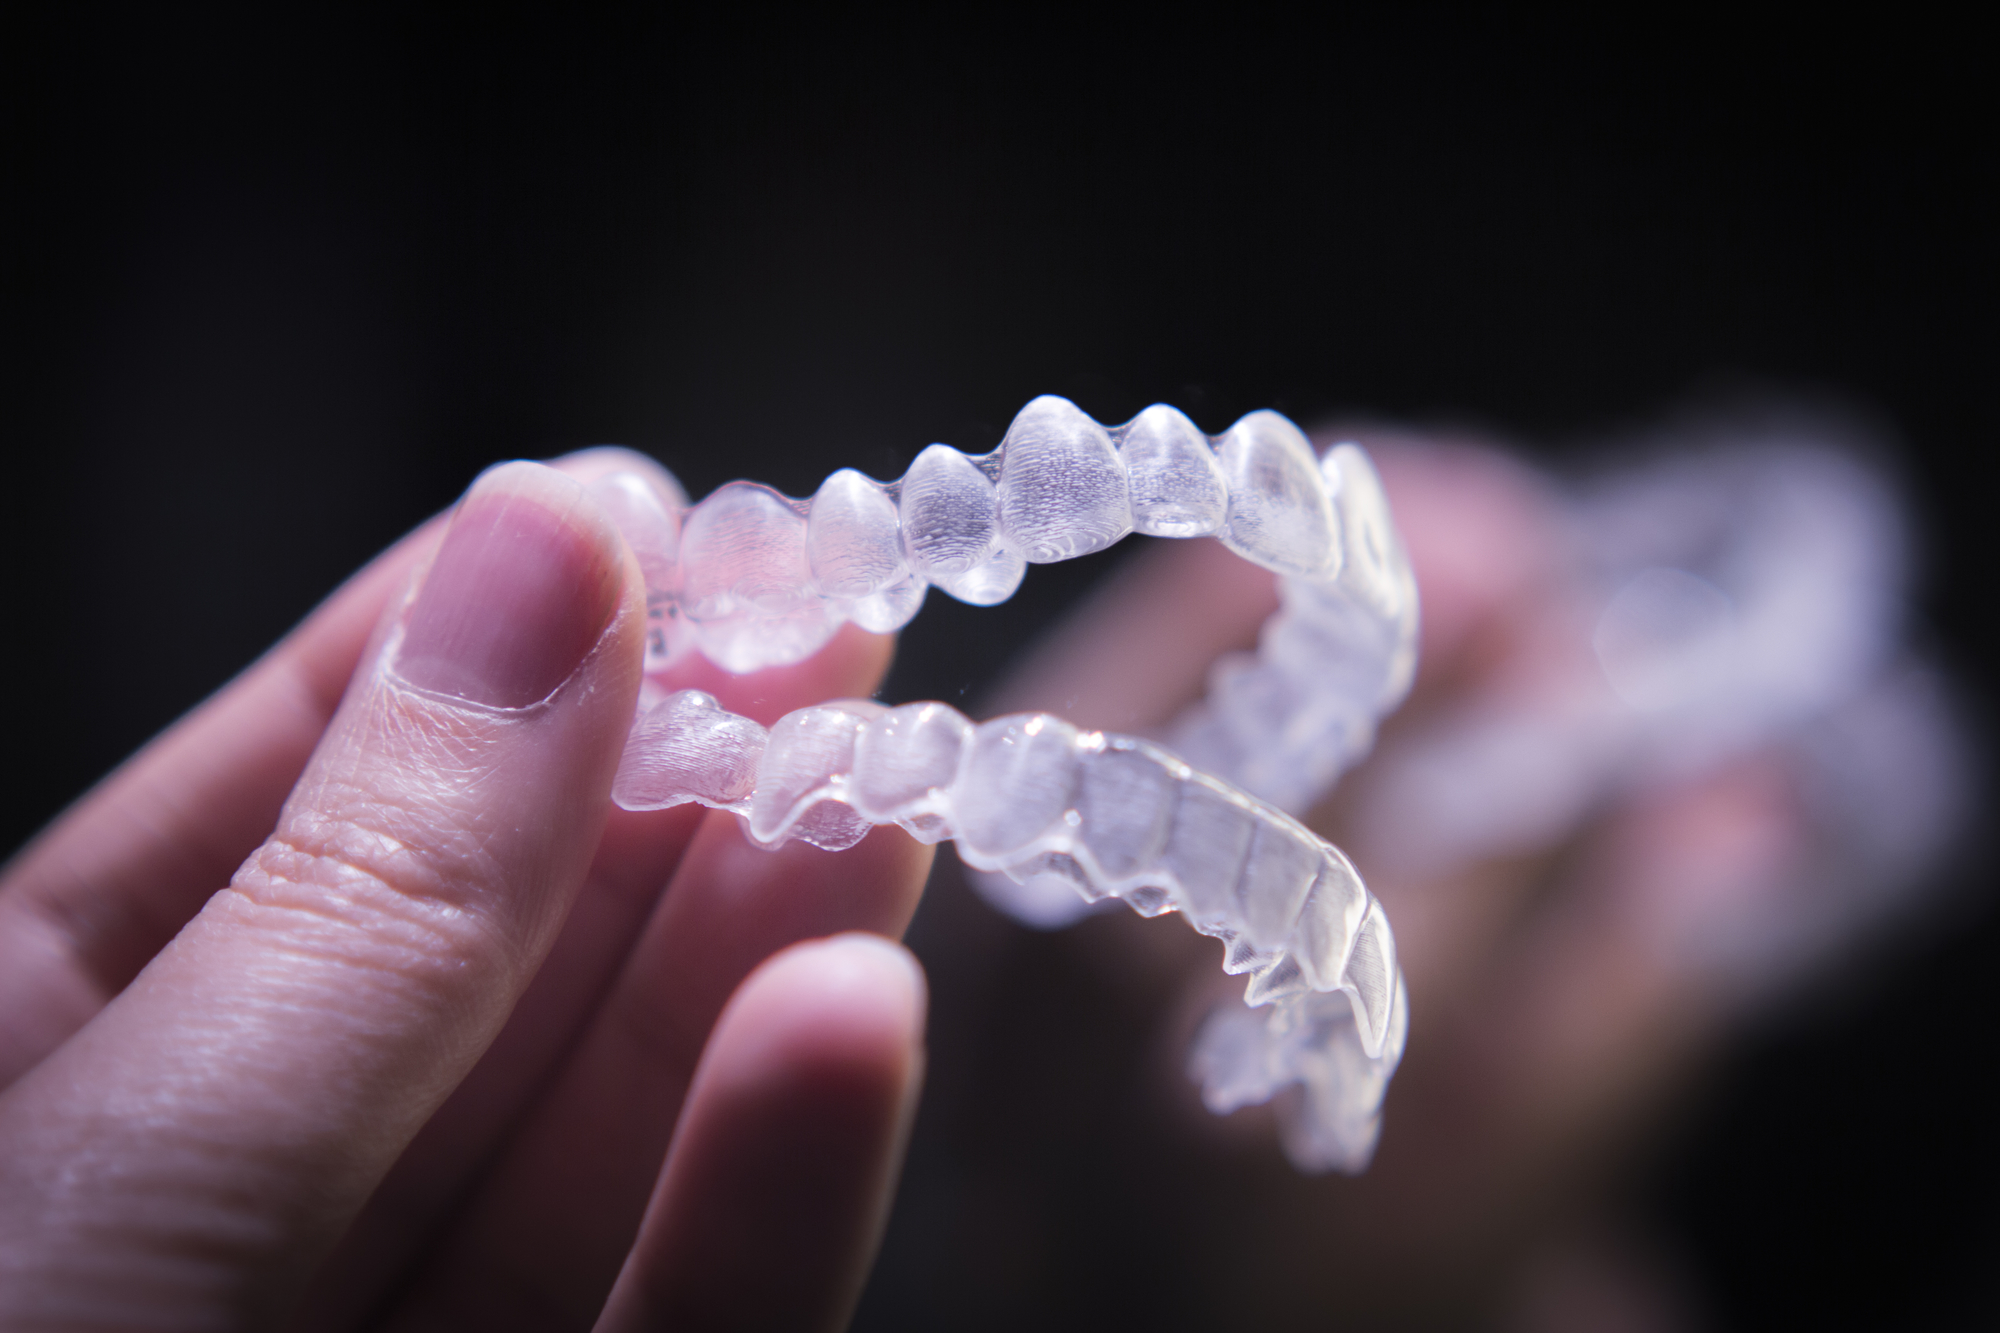 what is invisalign jupiter?